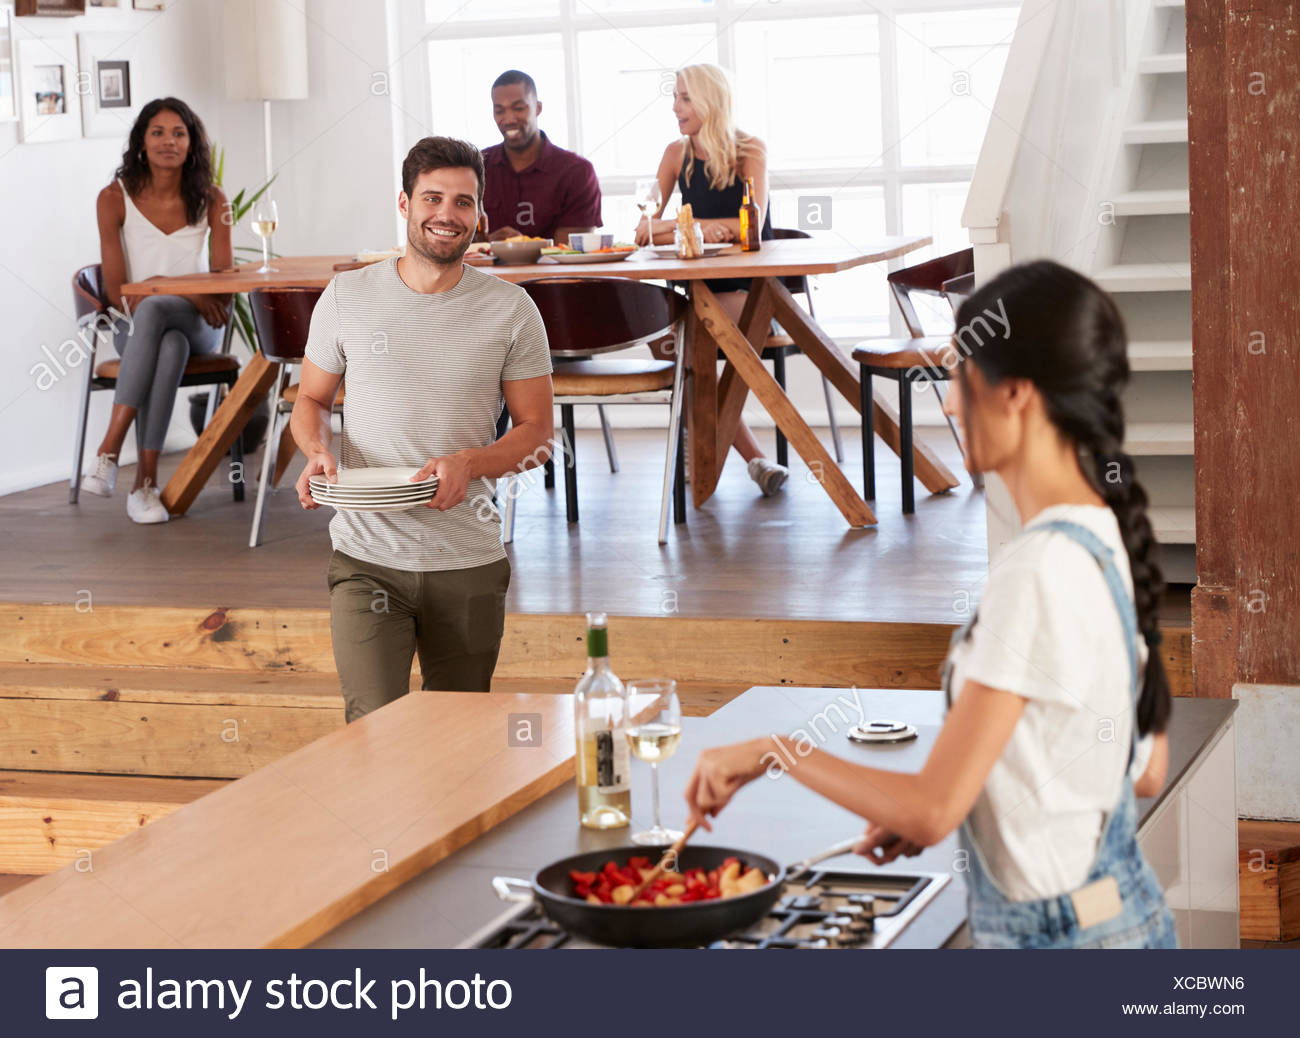 Friends Prepare And Serve Food For Dinner Party At Home Together - Stock Image